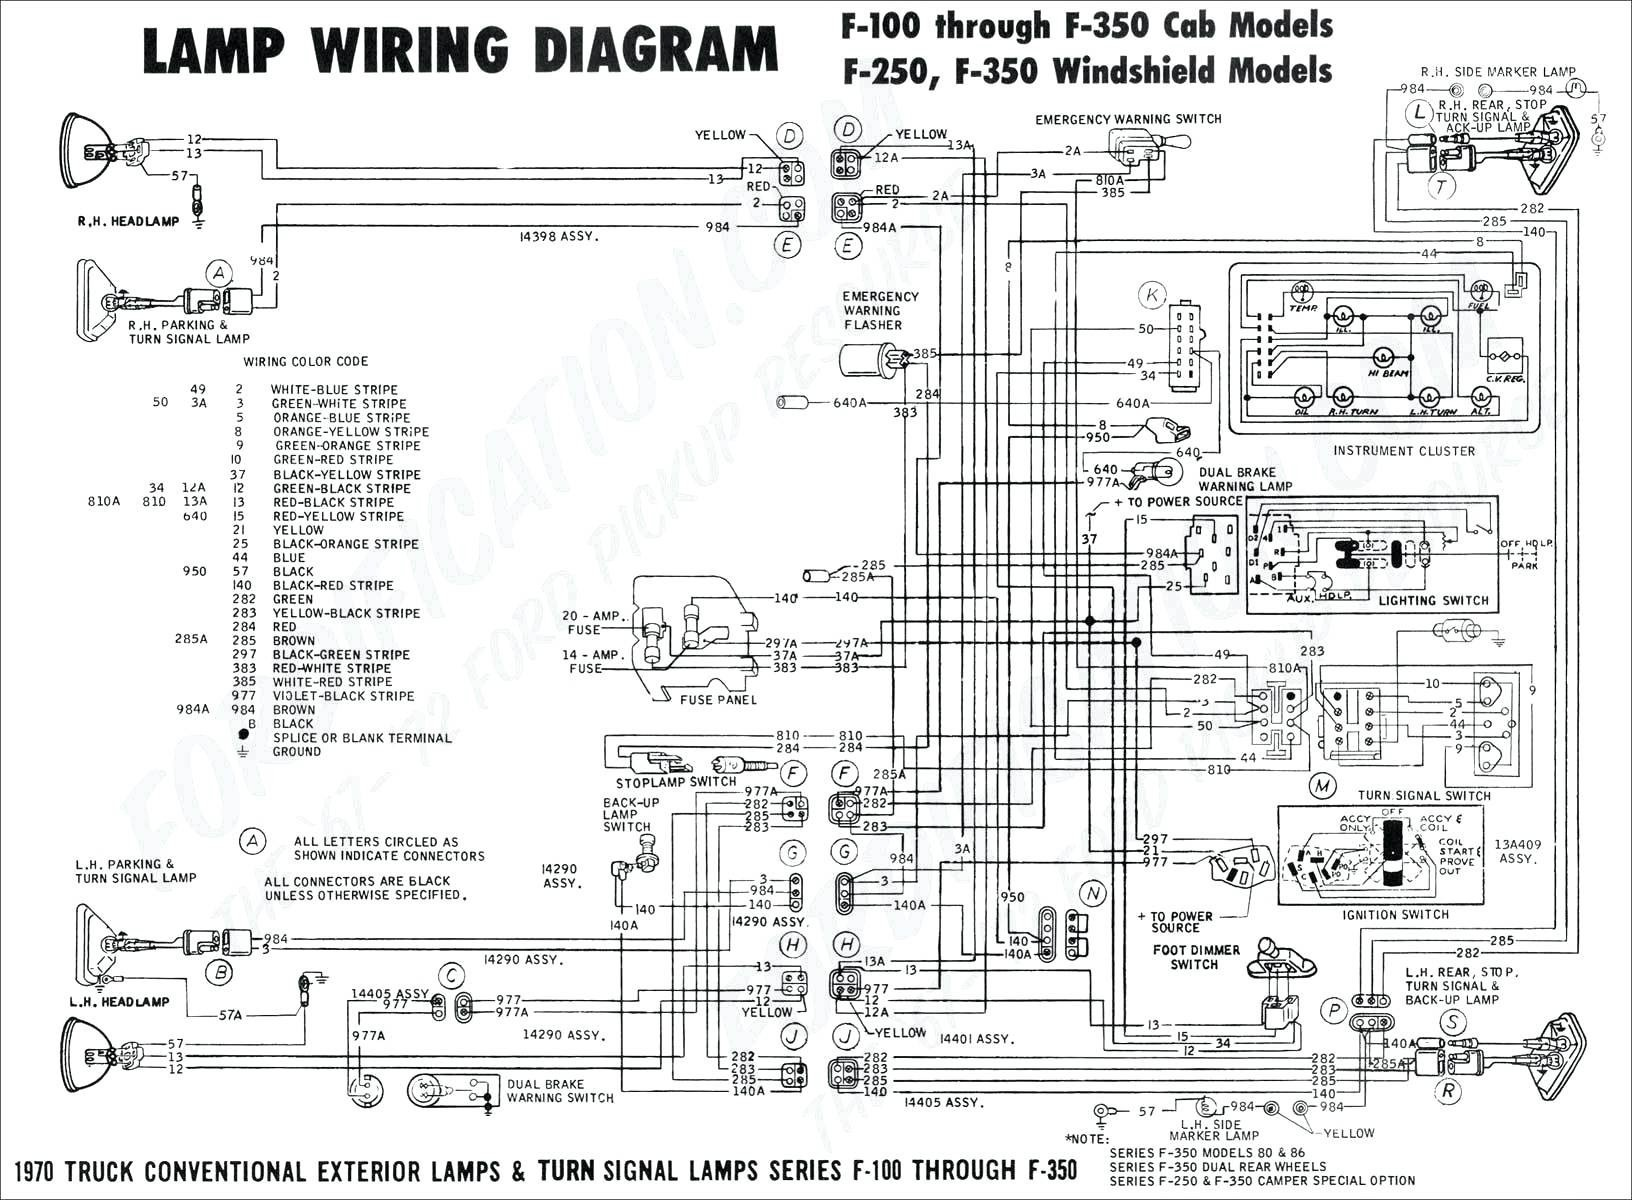 2005 Nissan Xterra Engine Diagram Karr Wiring Diagram Versa Daily Update Wiring Diagram Of 2005 Nissan Xterra Engine Diagram 2002 Nissan Xterra Engine Diagram 2005 Nissan Pathfinder